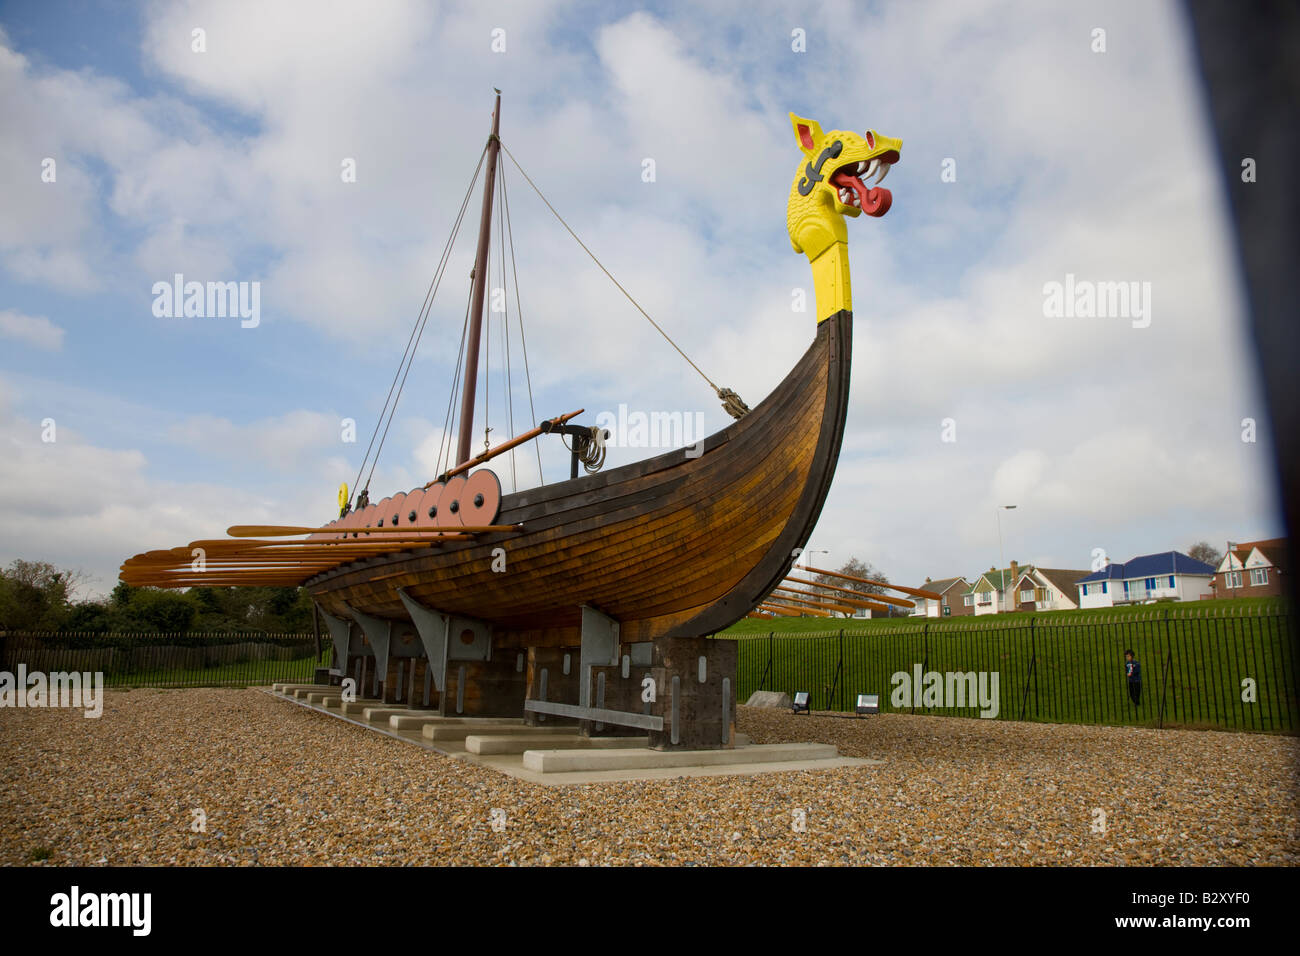 Viking ship marking the traditional landing place of the Saxons in Pegwell Bay AD 449 - Stock Image